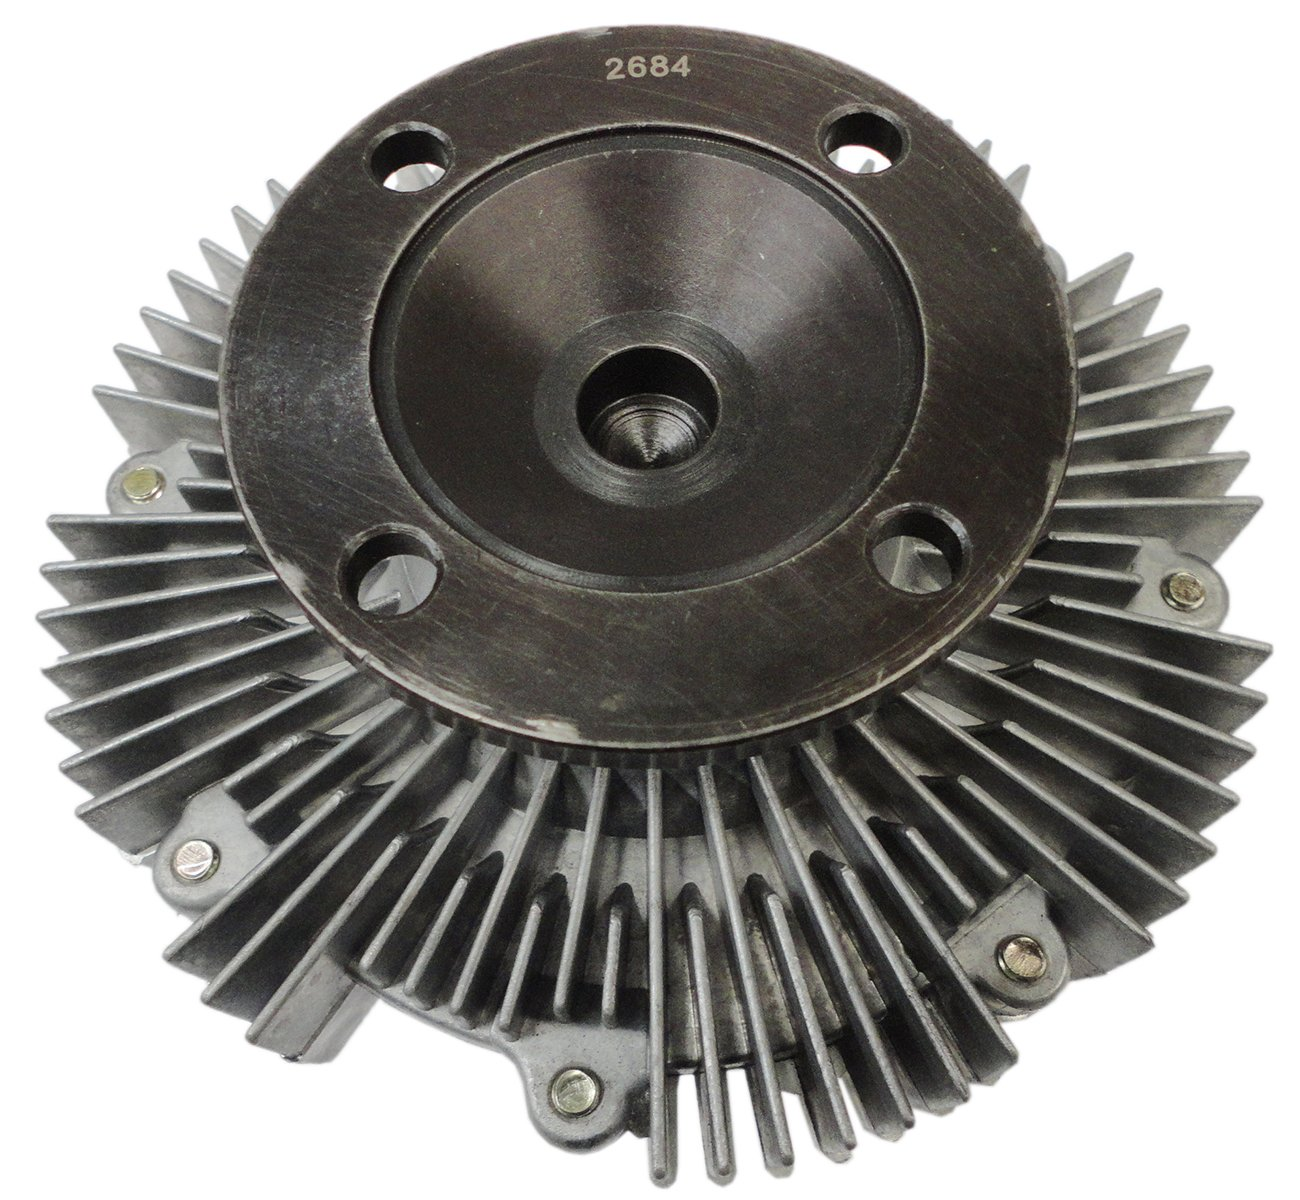 TOPAZ 2684 Engine Cooling Thermal Fan Clutch for Toyota 4Runner Tundra Sequoia Land Cruiser Lexus GX470 LX470 4.7L 5.7L